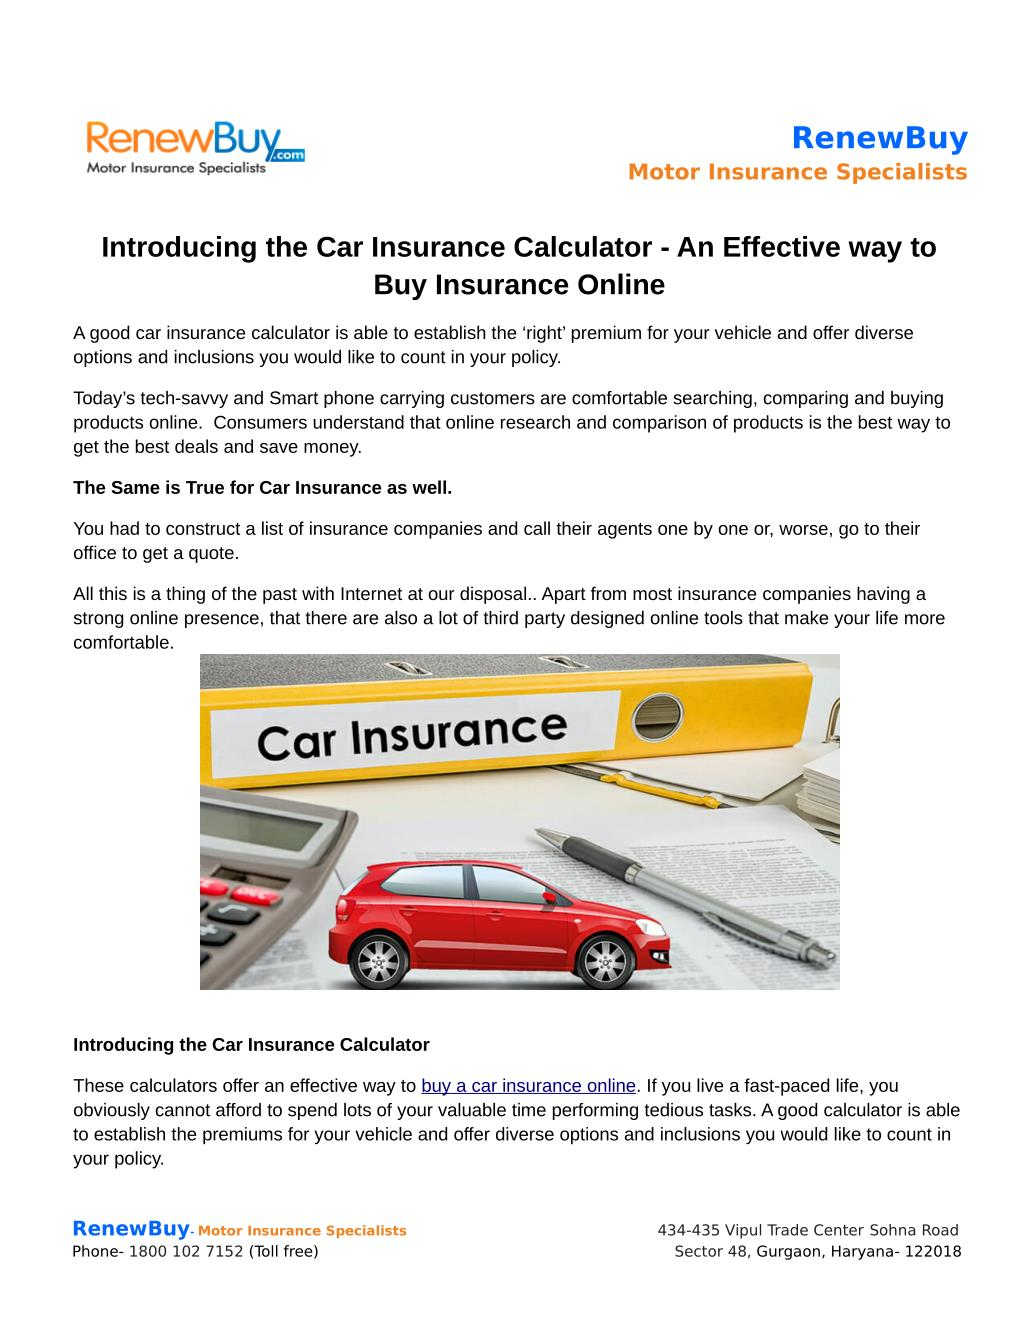 Ppt Introducing The Car Insurance Calculator An Effective Way To Buy Insurance Online Powerpoint Presentation Id 7390679